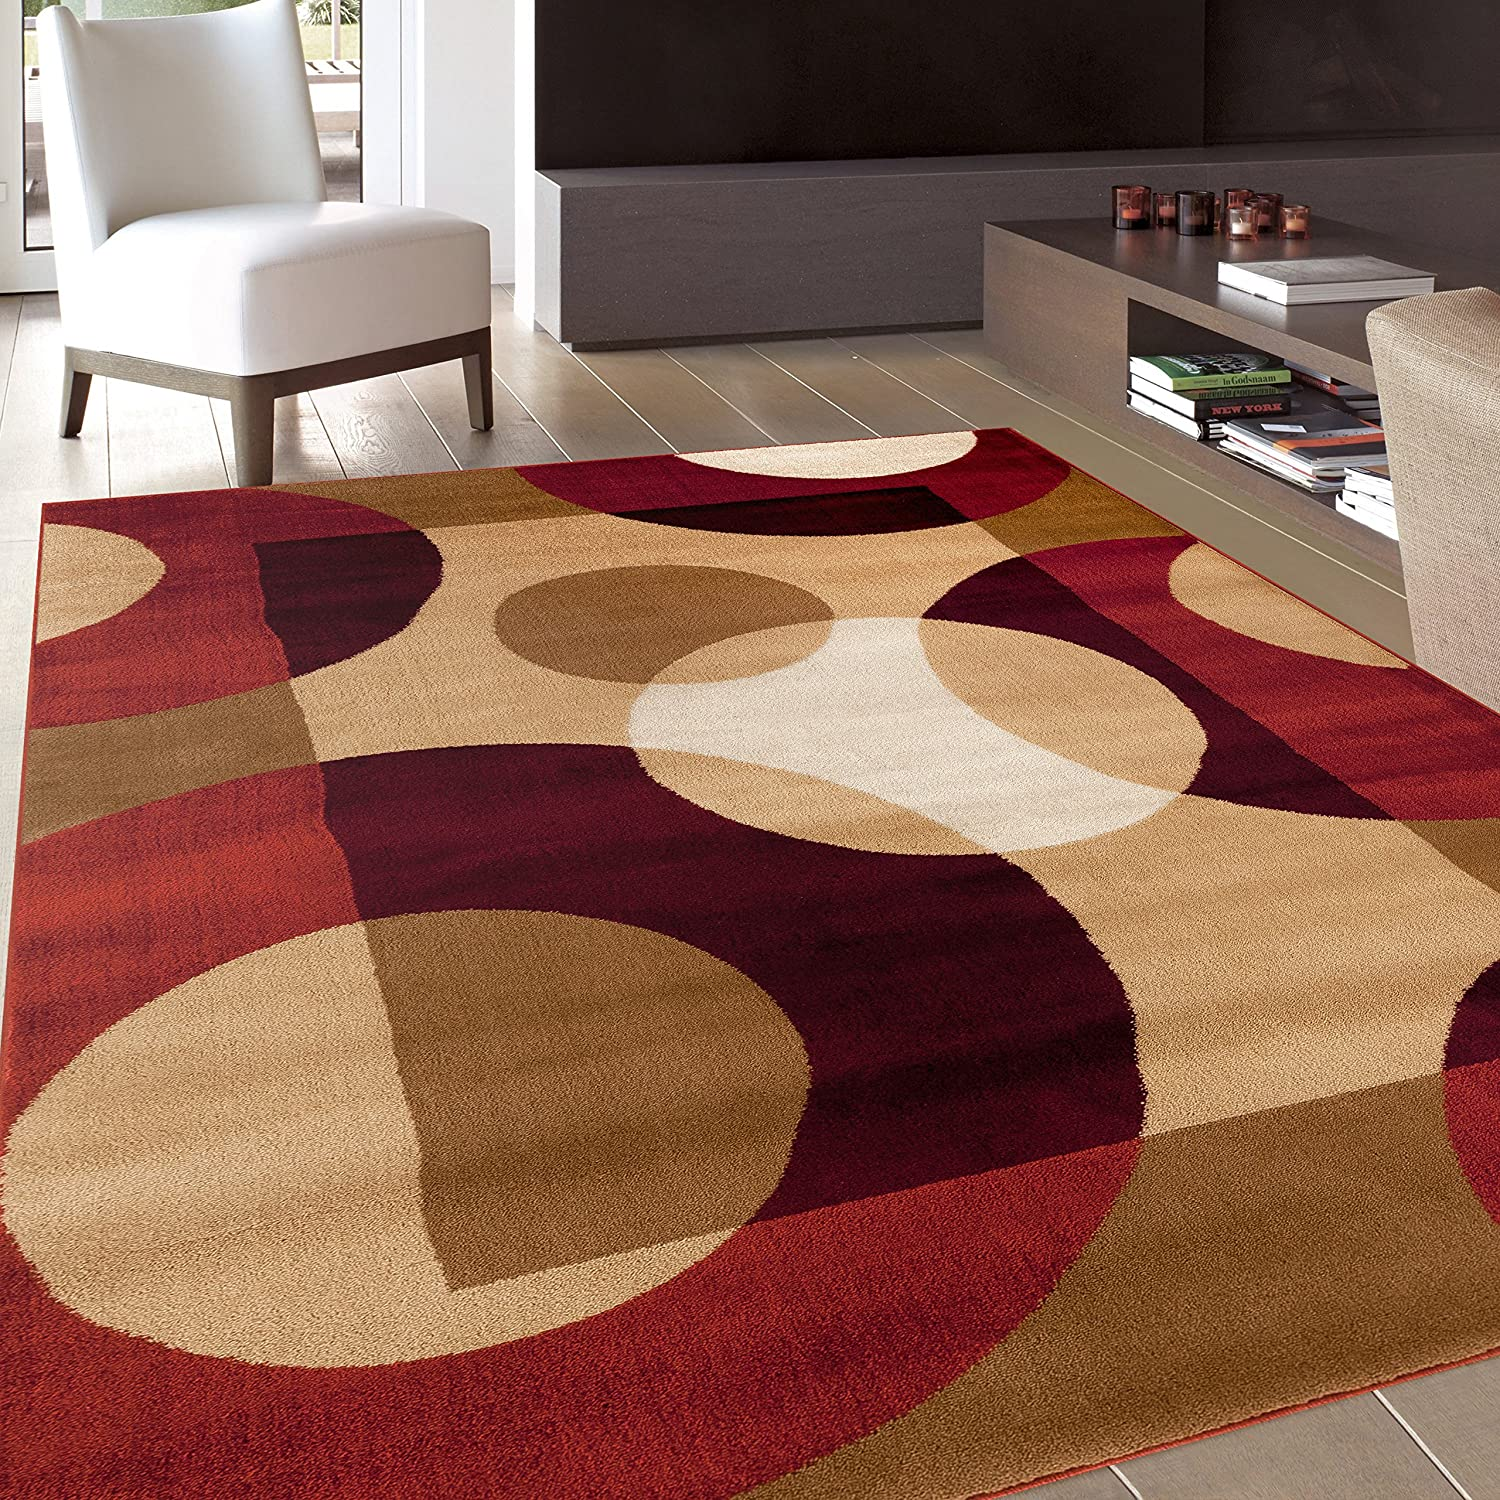 "Rugshop Modern Circles Area Rug, 5' 3"" x 7' 3"", Multicolor"